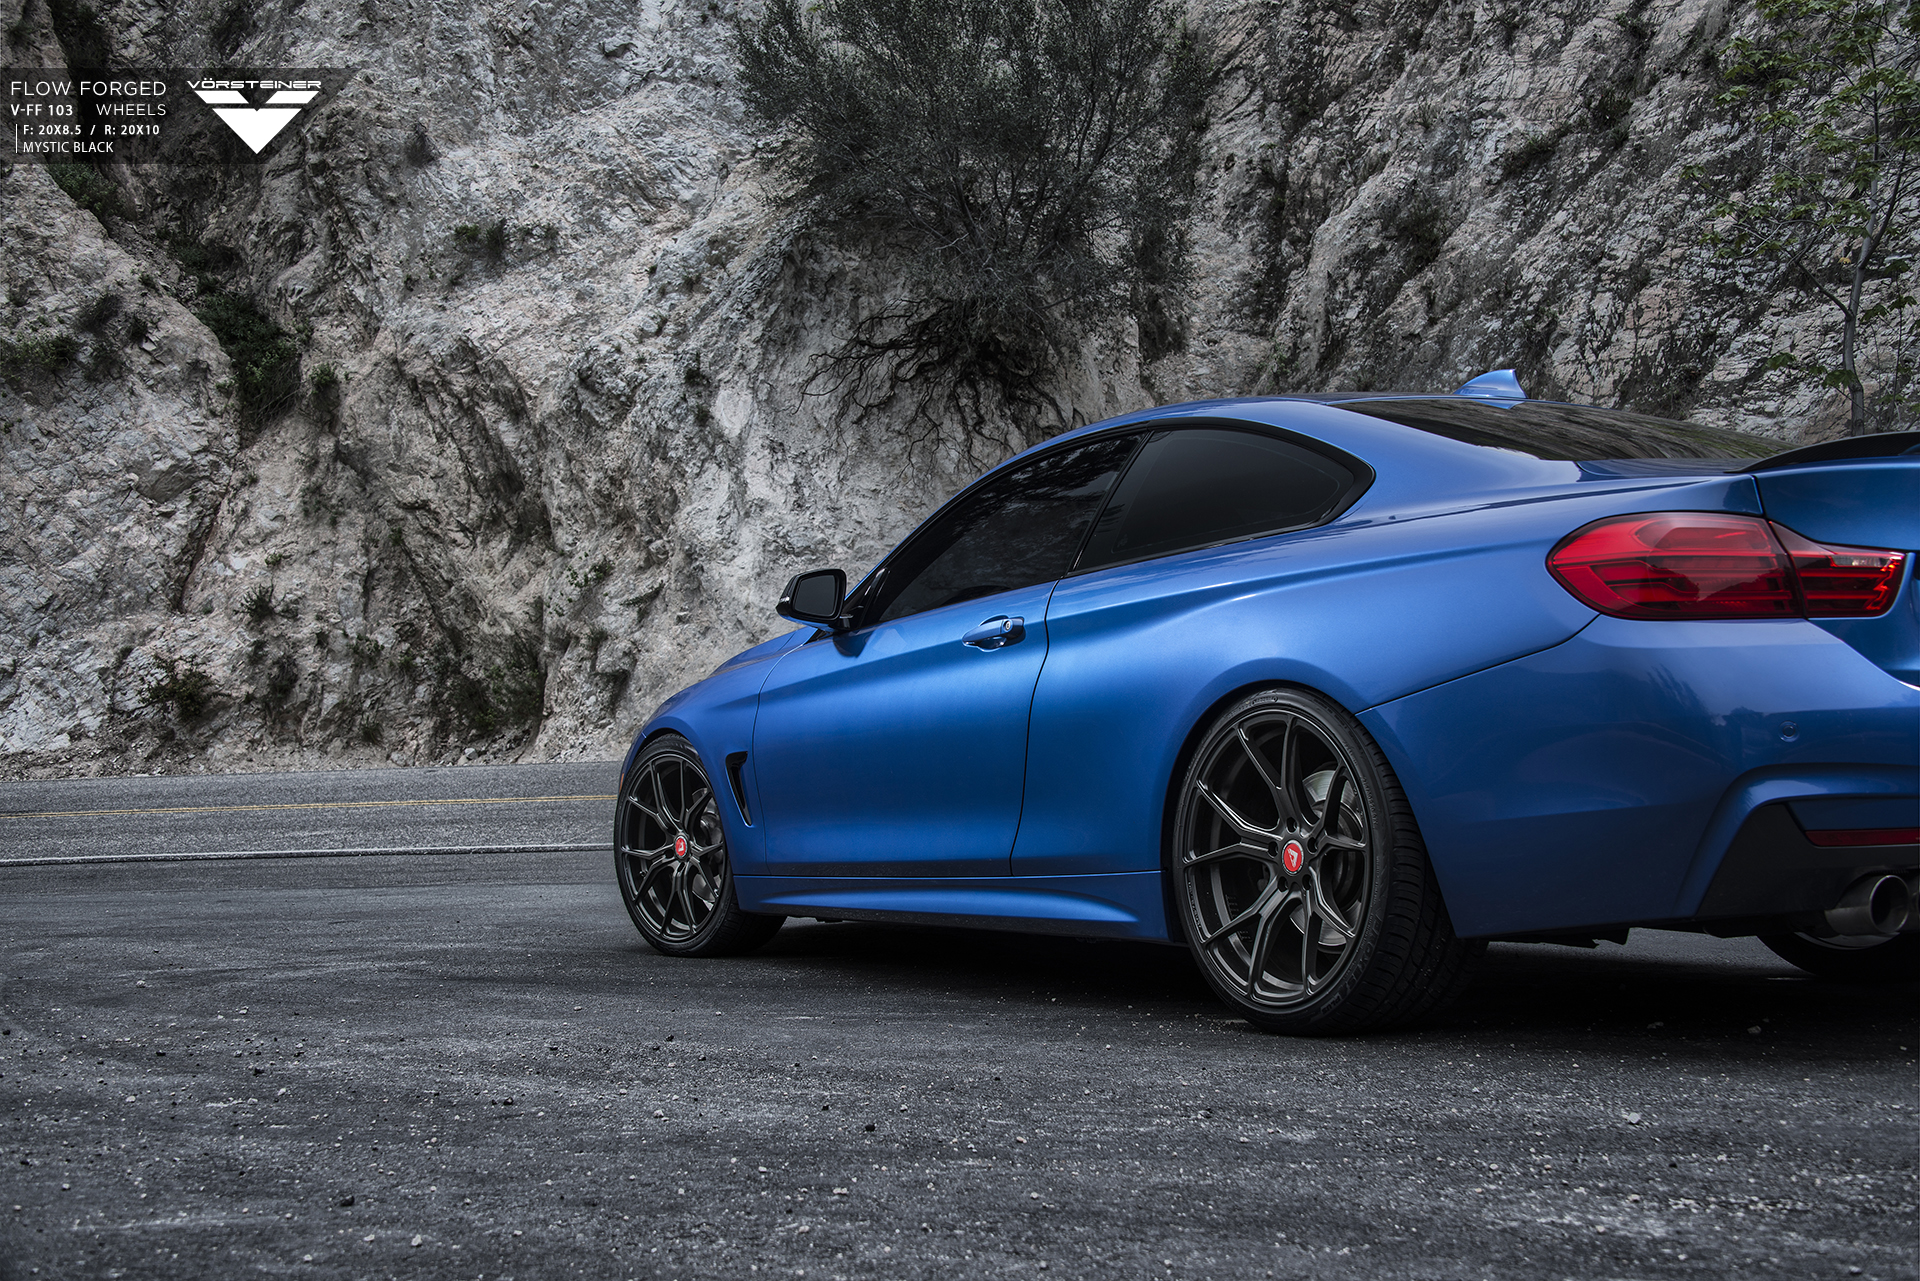 Estoril Blue Bmw Series With Vorsteiner Wheels Installed By Vibe Motorsports in addition Bmw X Hr in addition X And Q Interior as well Alpina I Turbo Prototype Interior additionally Bmw M Facelift Spy Photo Front Quarter. on bmw twin turbo 4 cylinder engine